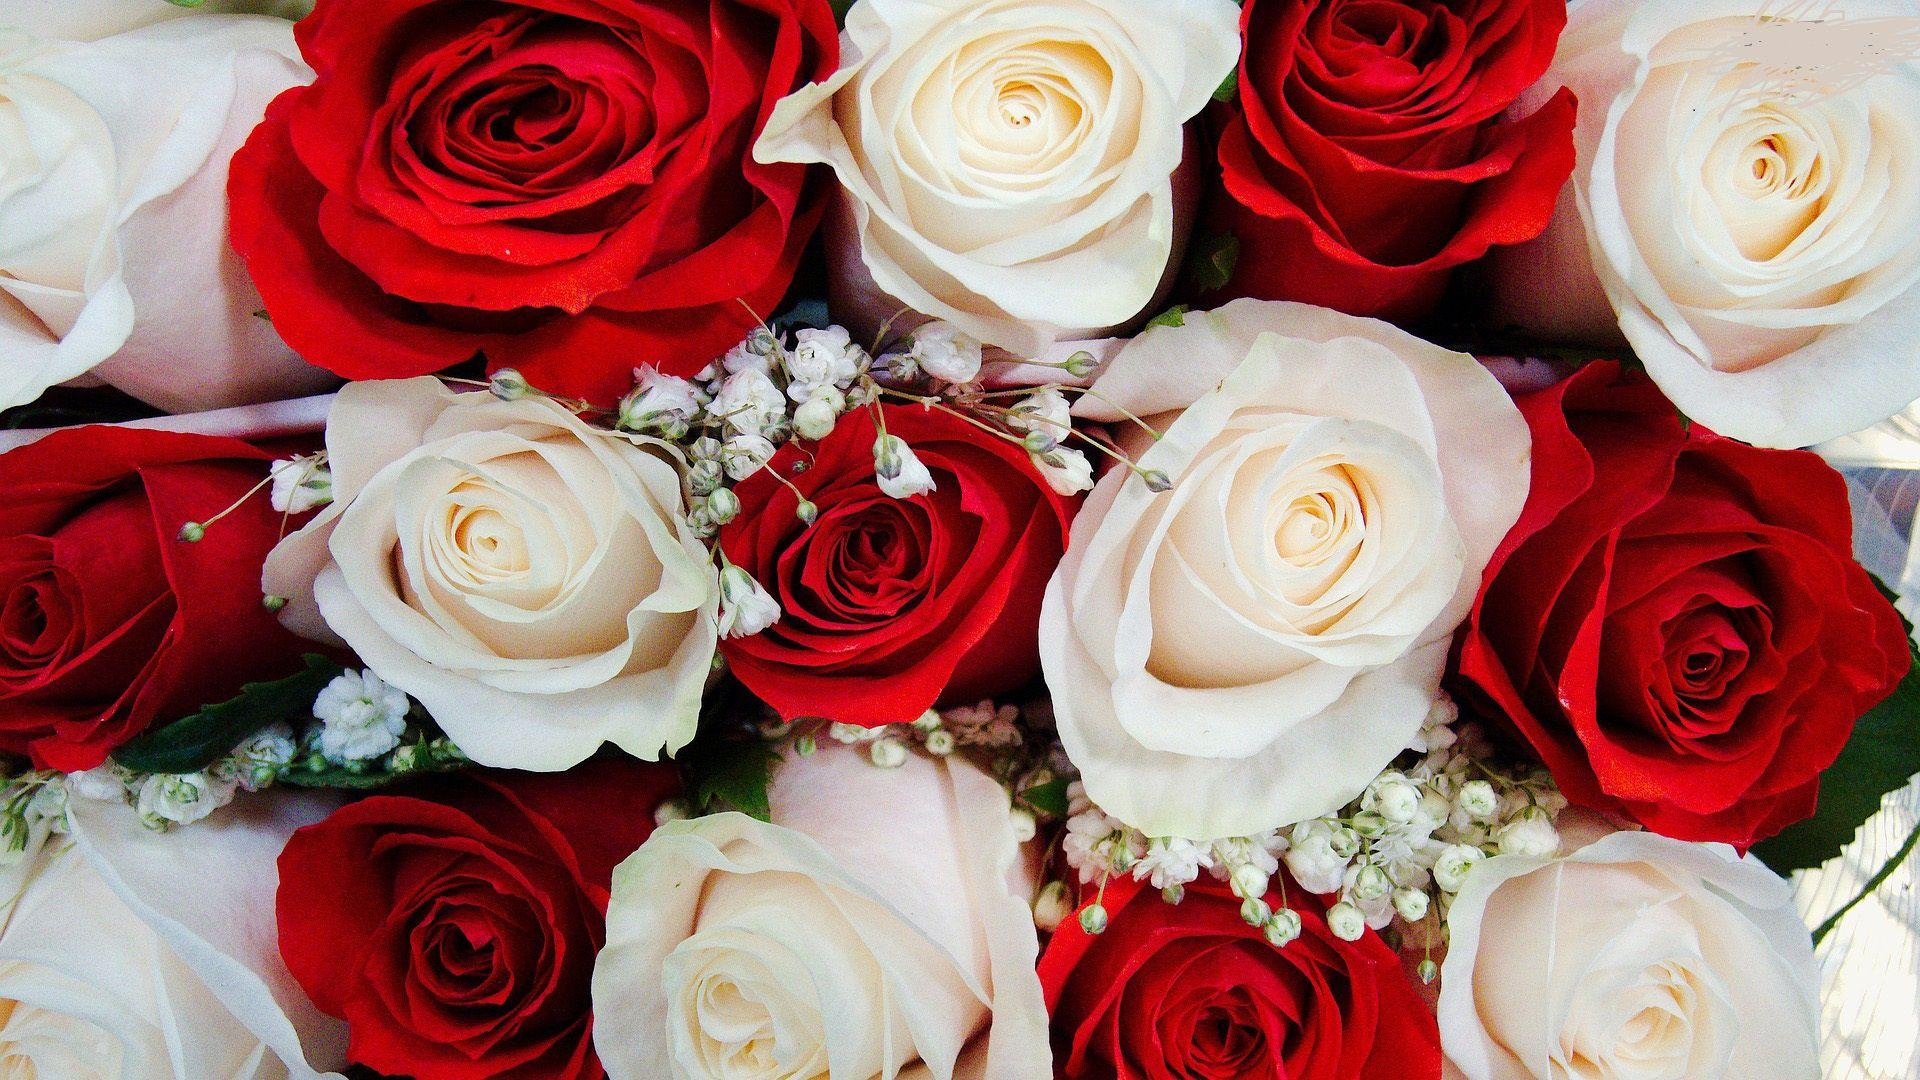 Wallpapers Of Red White Roses Wallpaper Cave